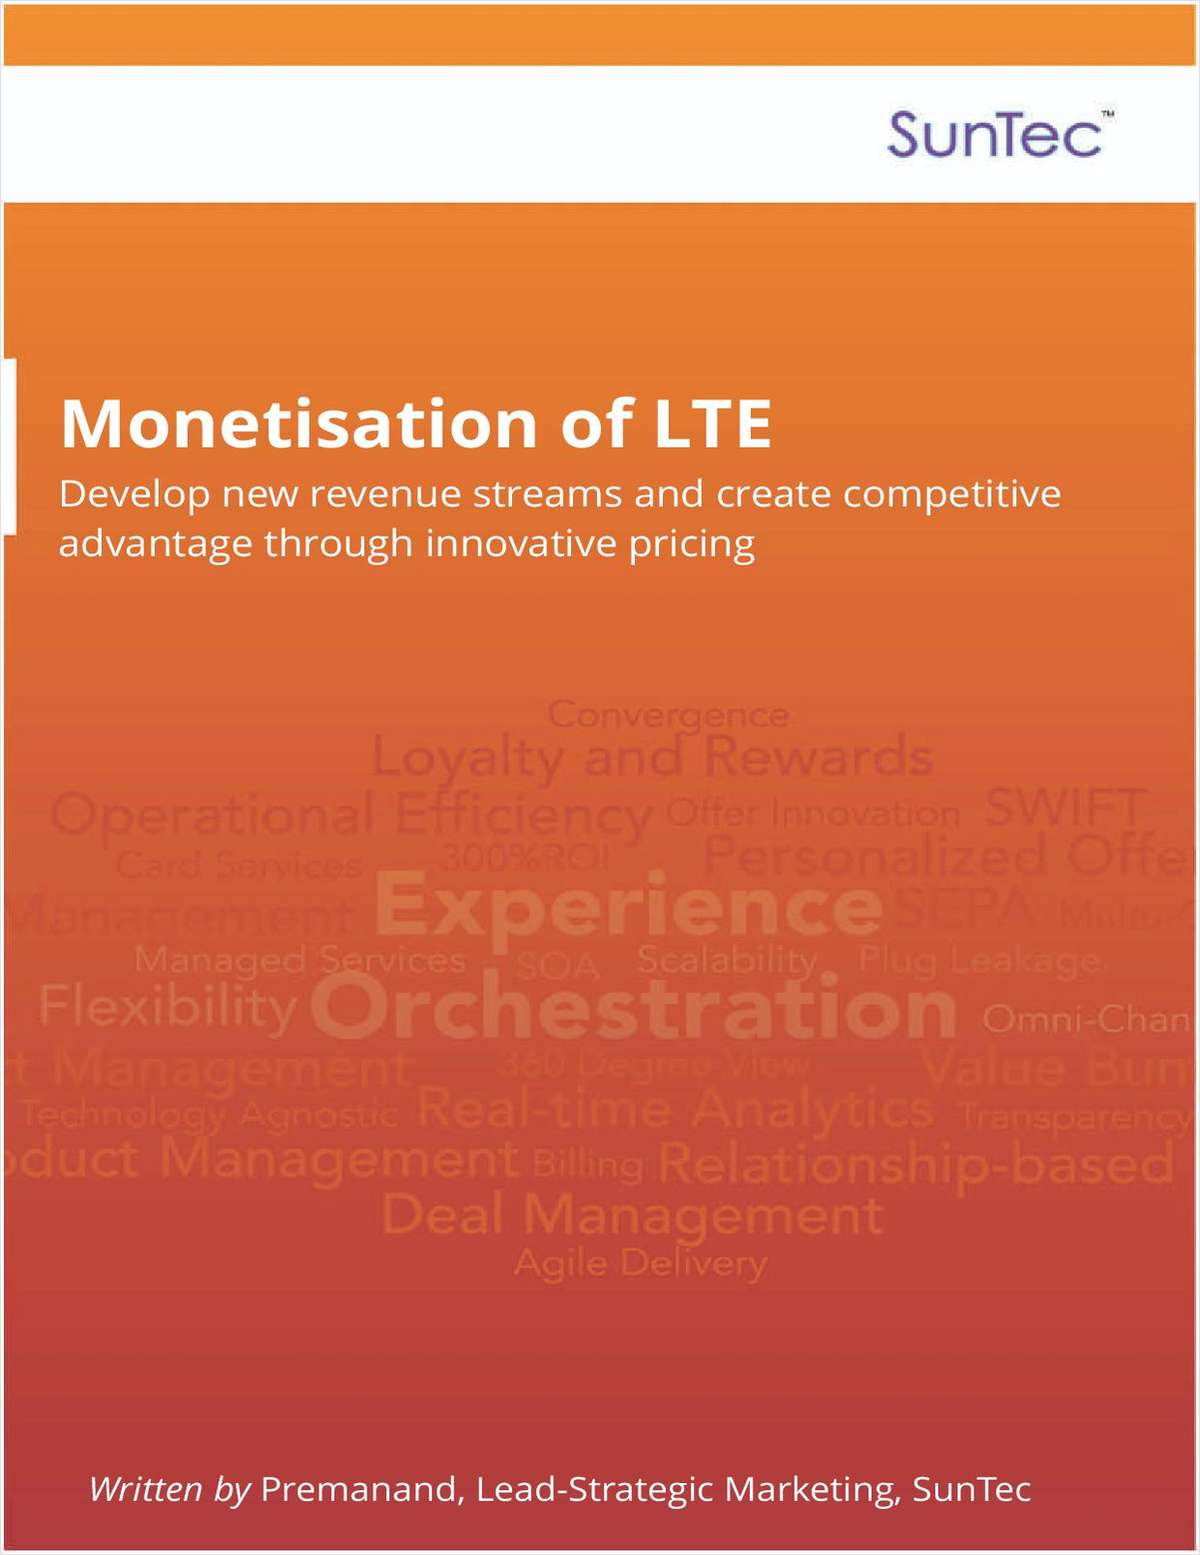 Monetisation of LTE Services for Telecom operators